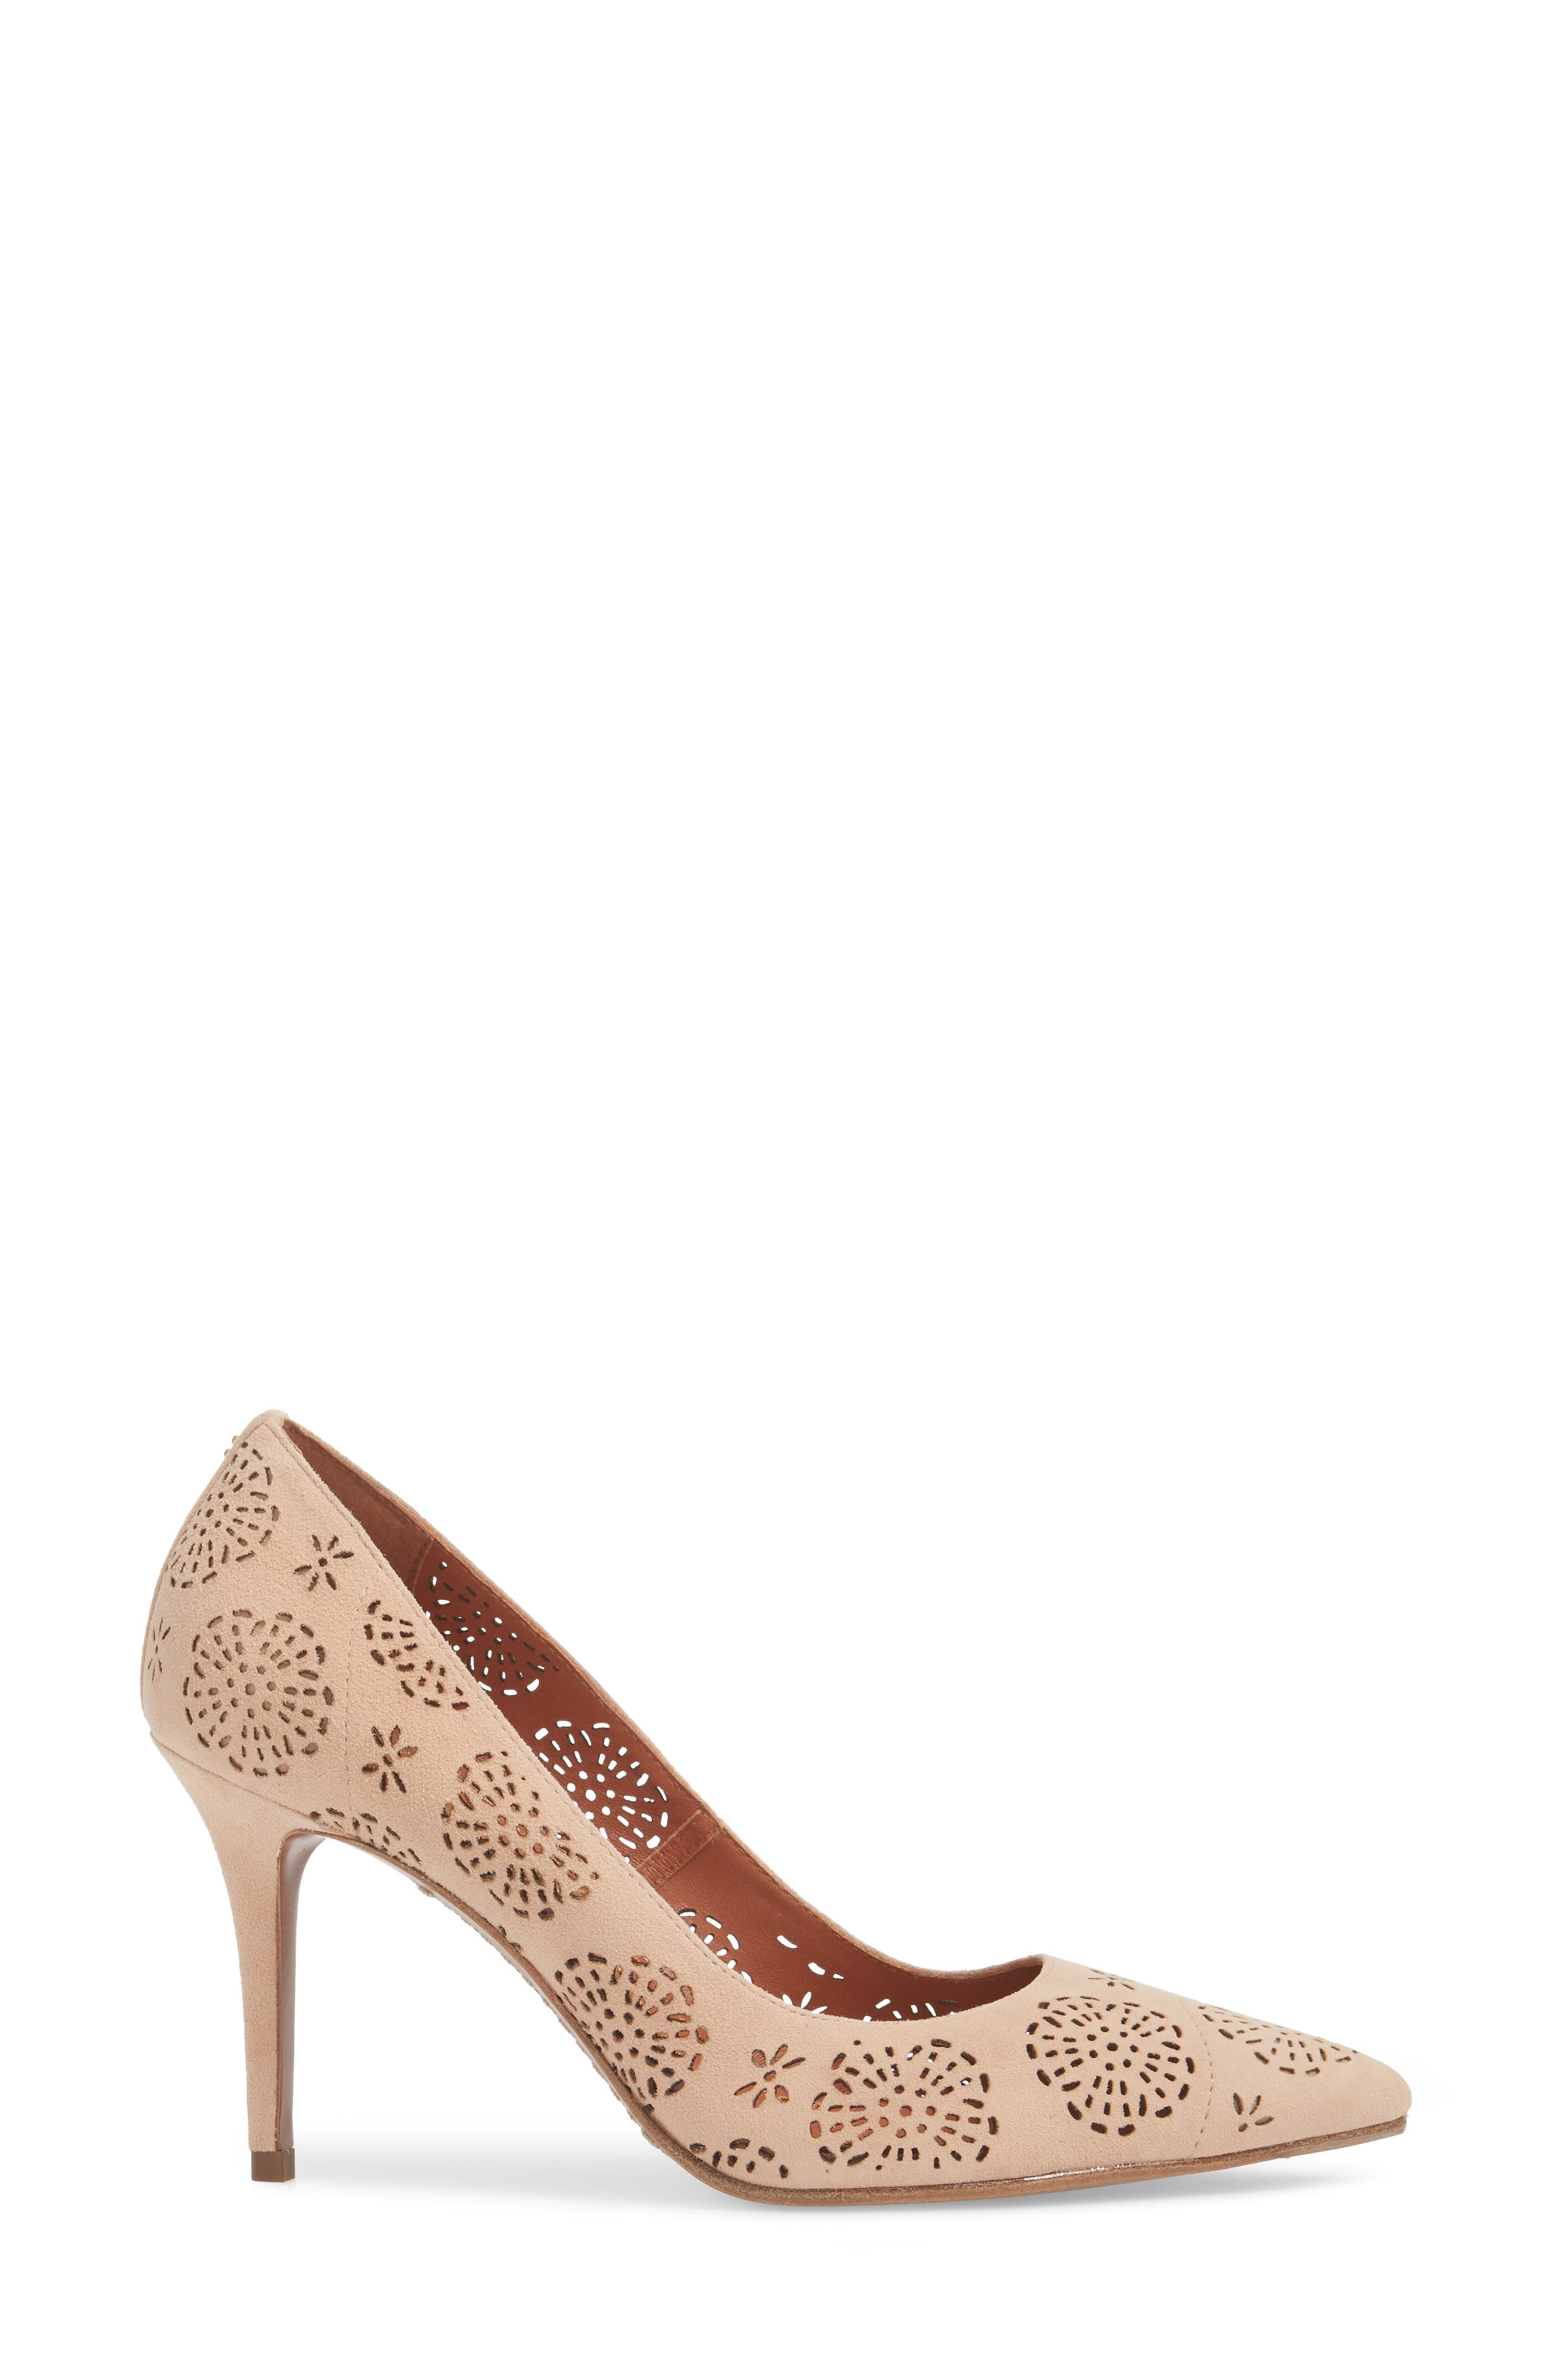 Waverly Tea Rose Perforated Pump,                             Alternate thumbnail 3, color,                             259